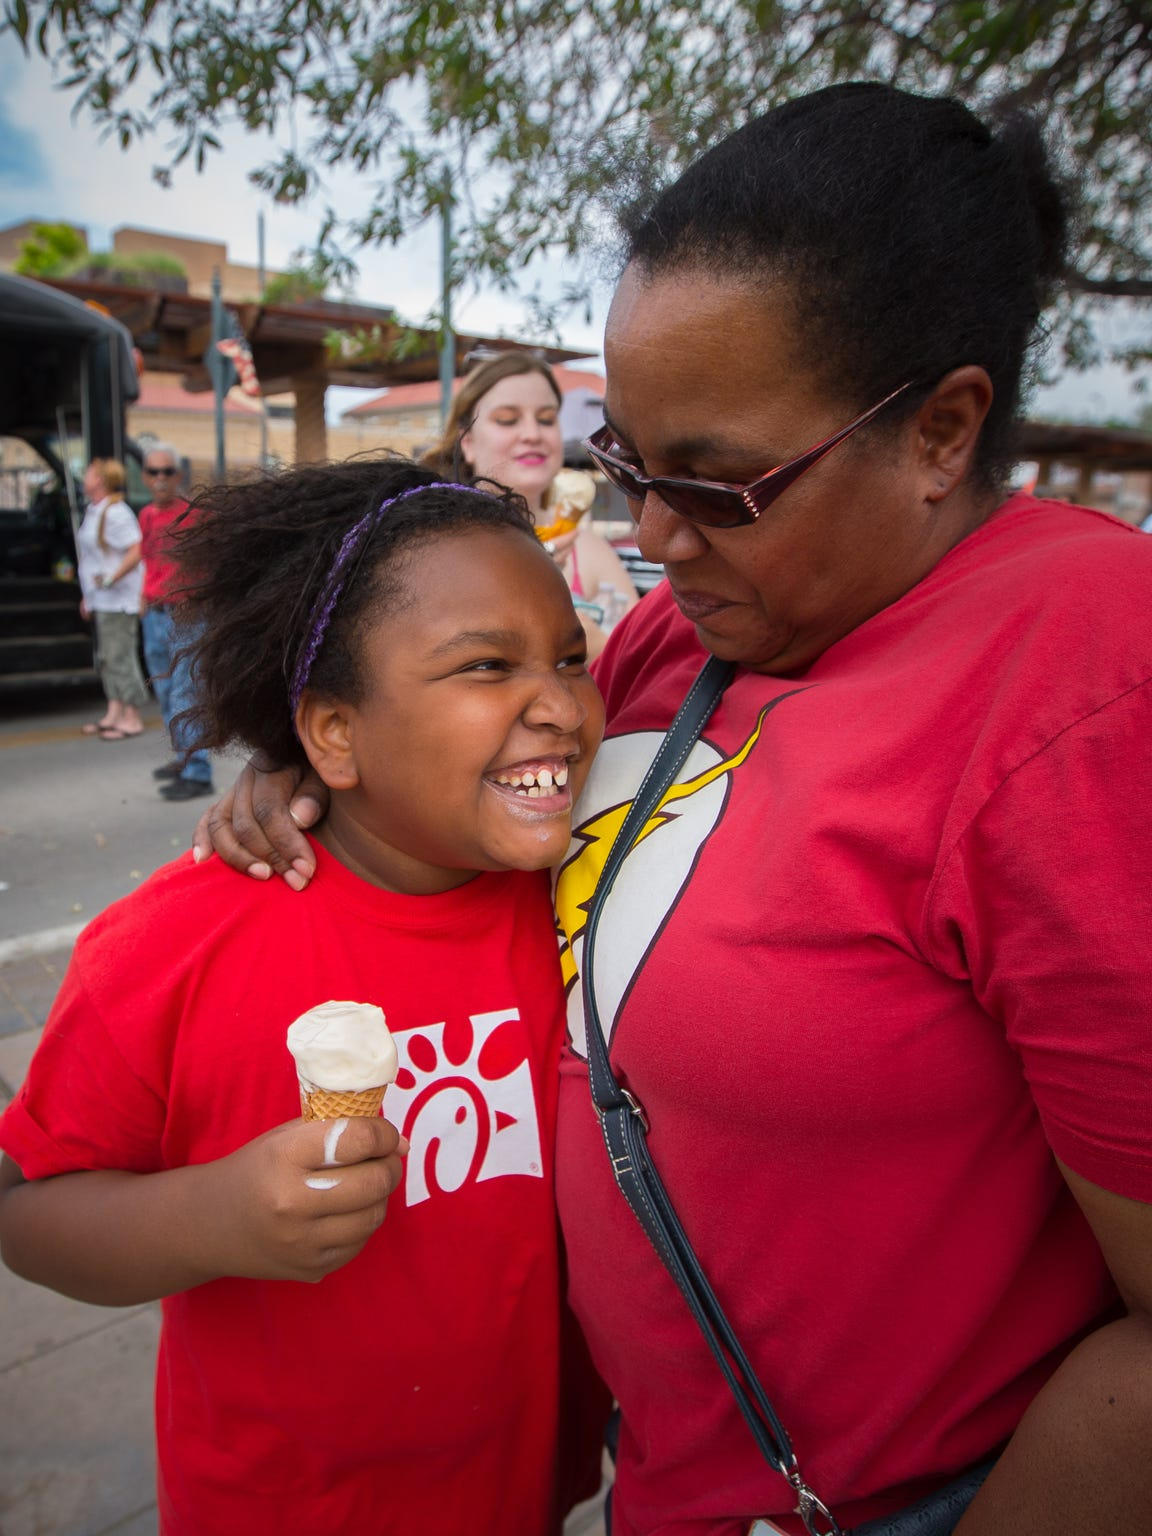 8-year-old Jasmine Mitchell is held by her mother Sherri